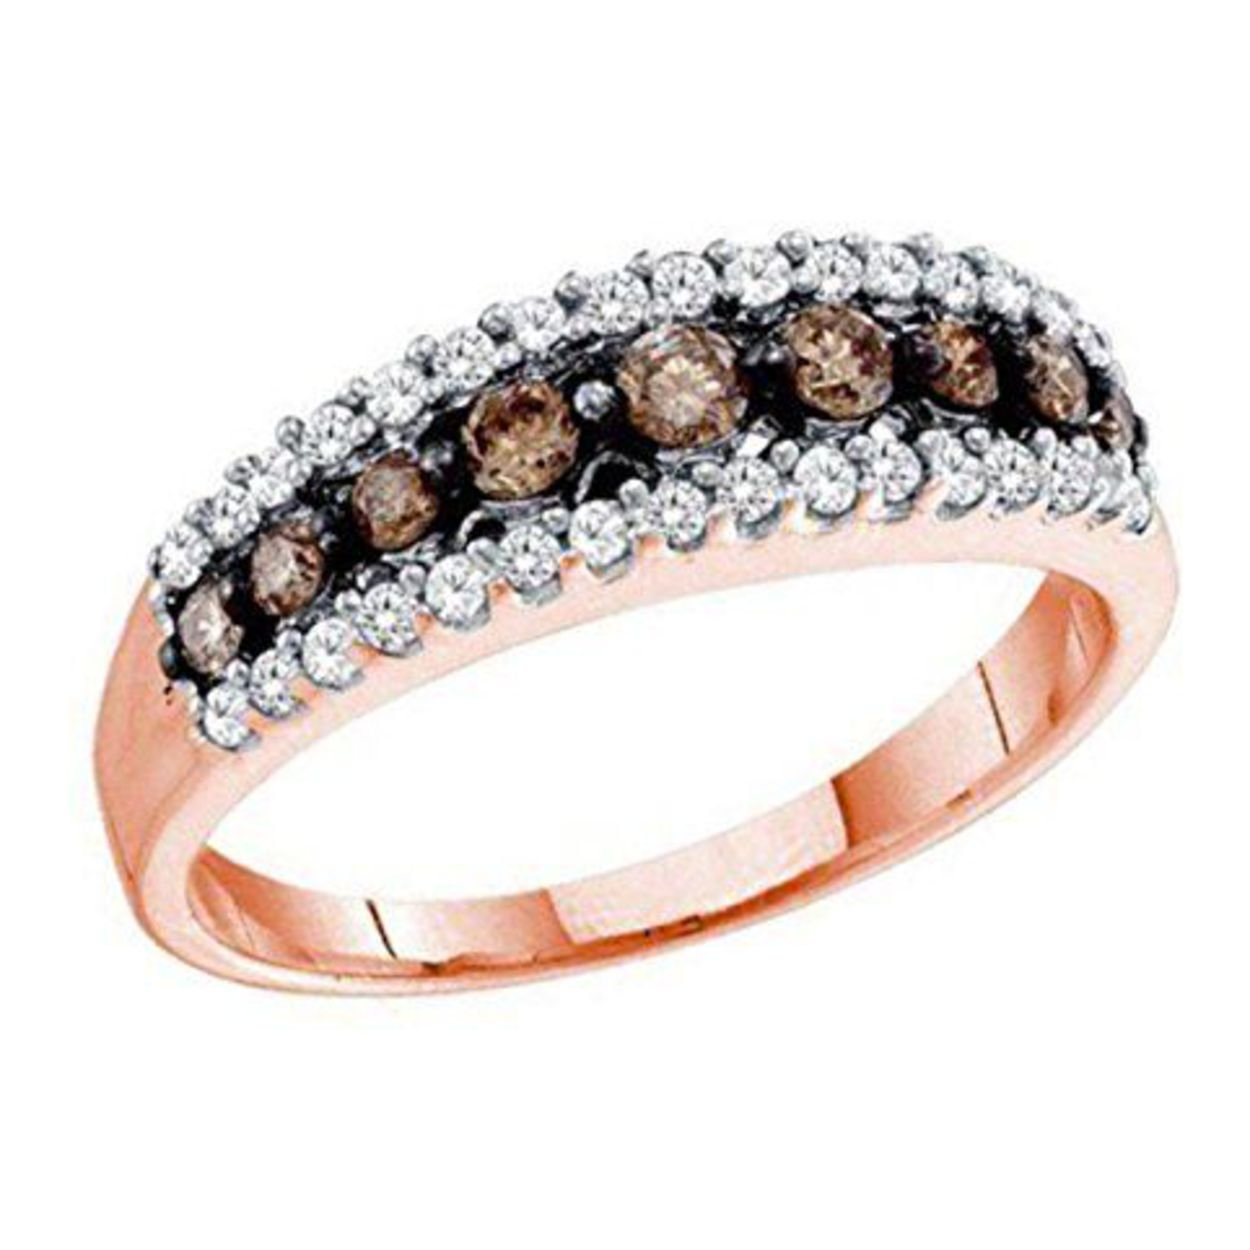 0.5 cttw 14k Rose Gold Cognac Brown Diamond Wedding Anniversary Band Ring, 6mm